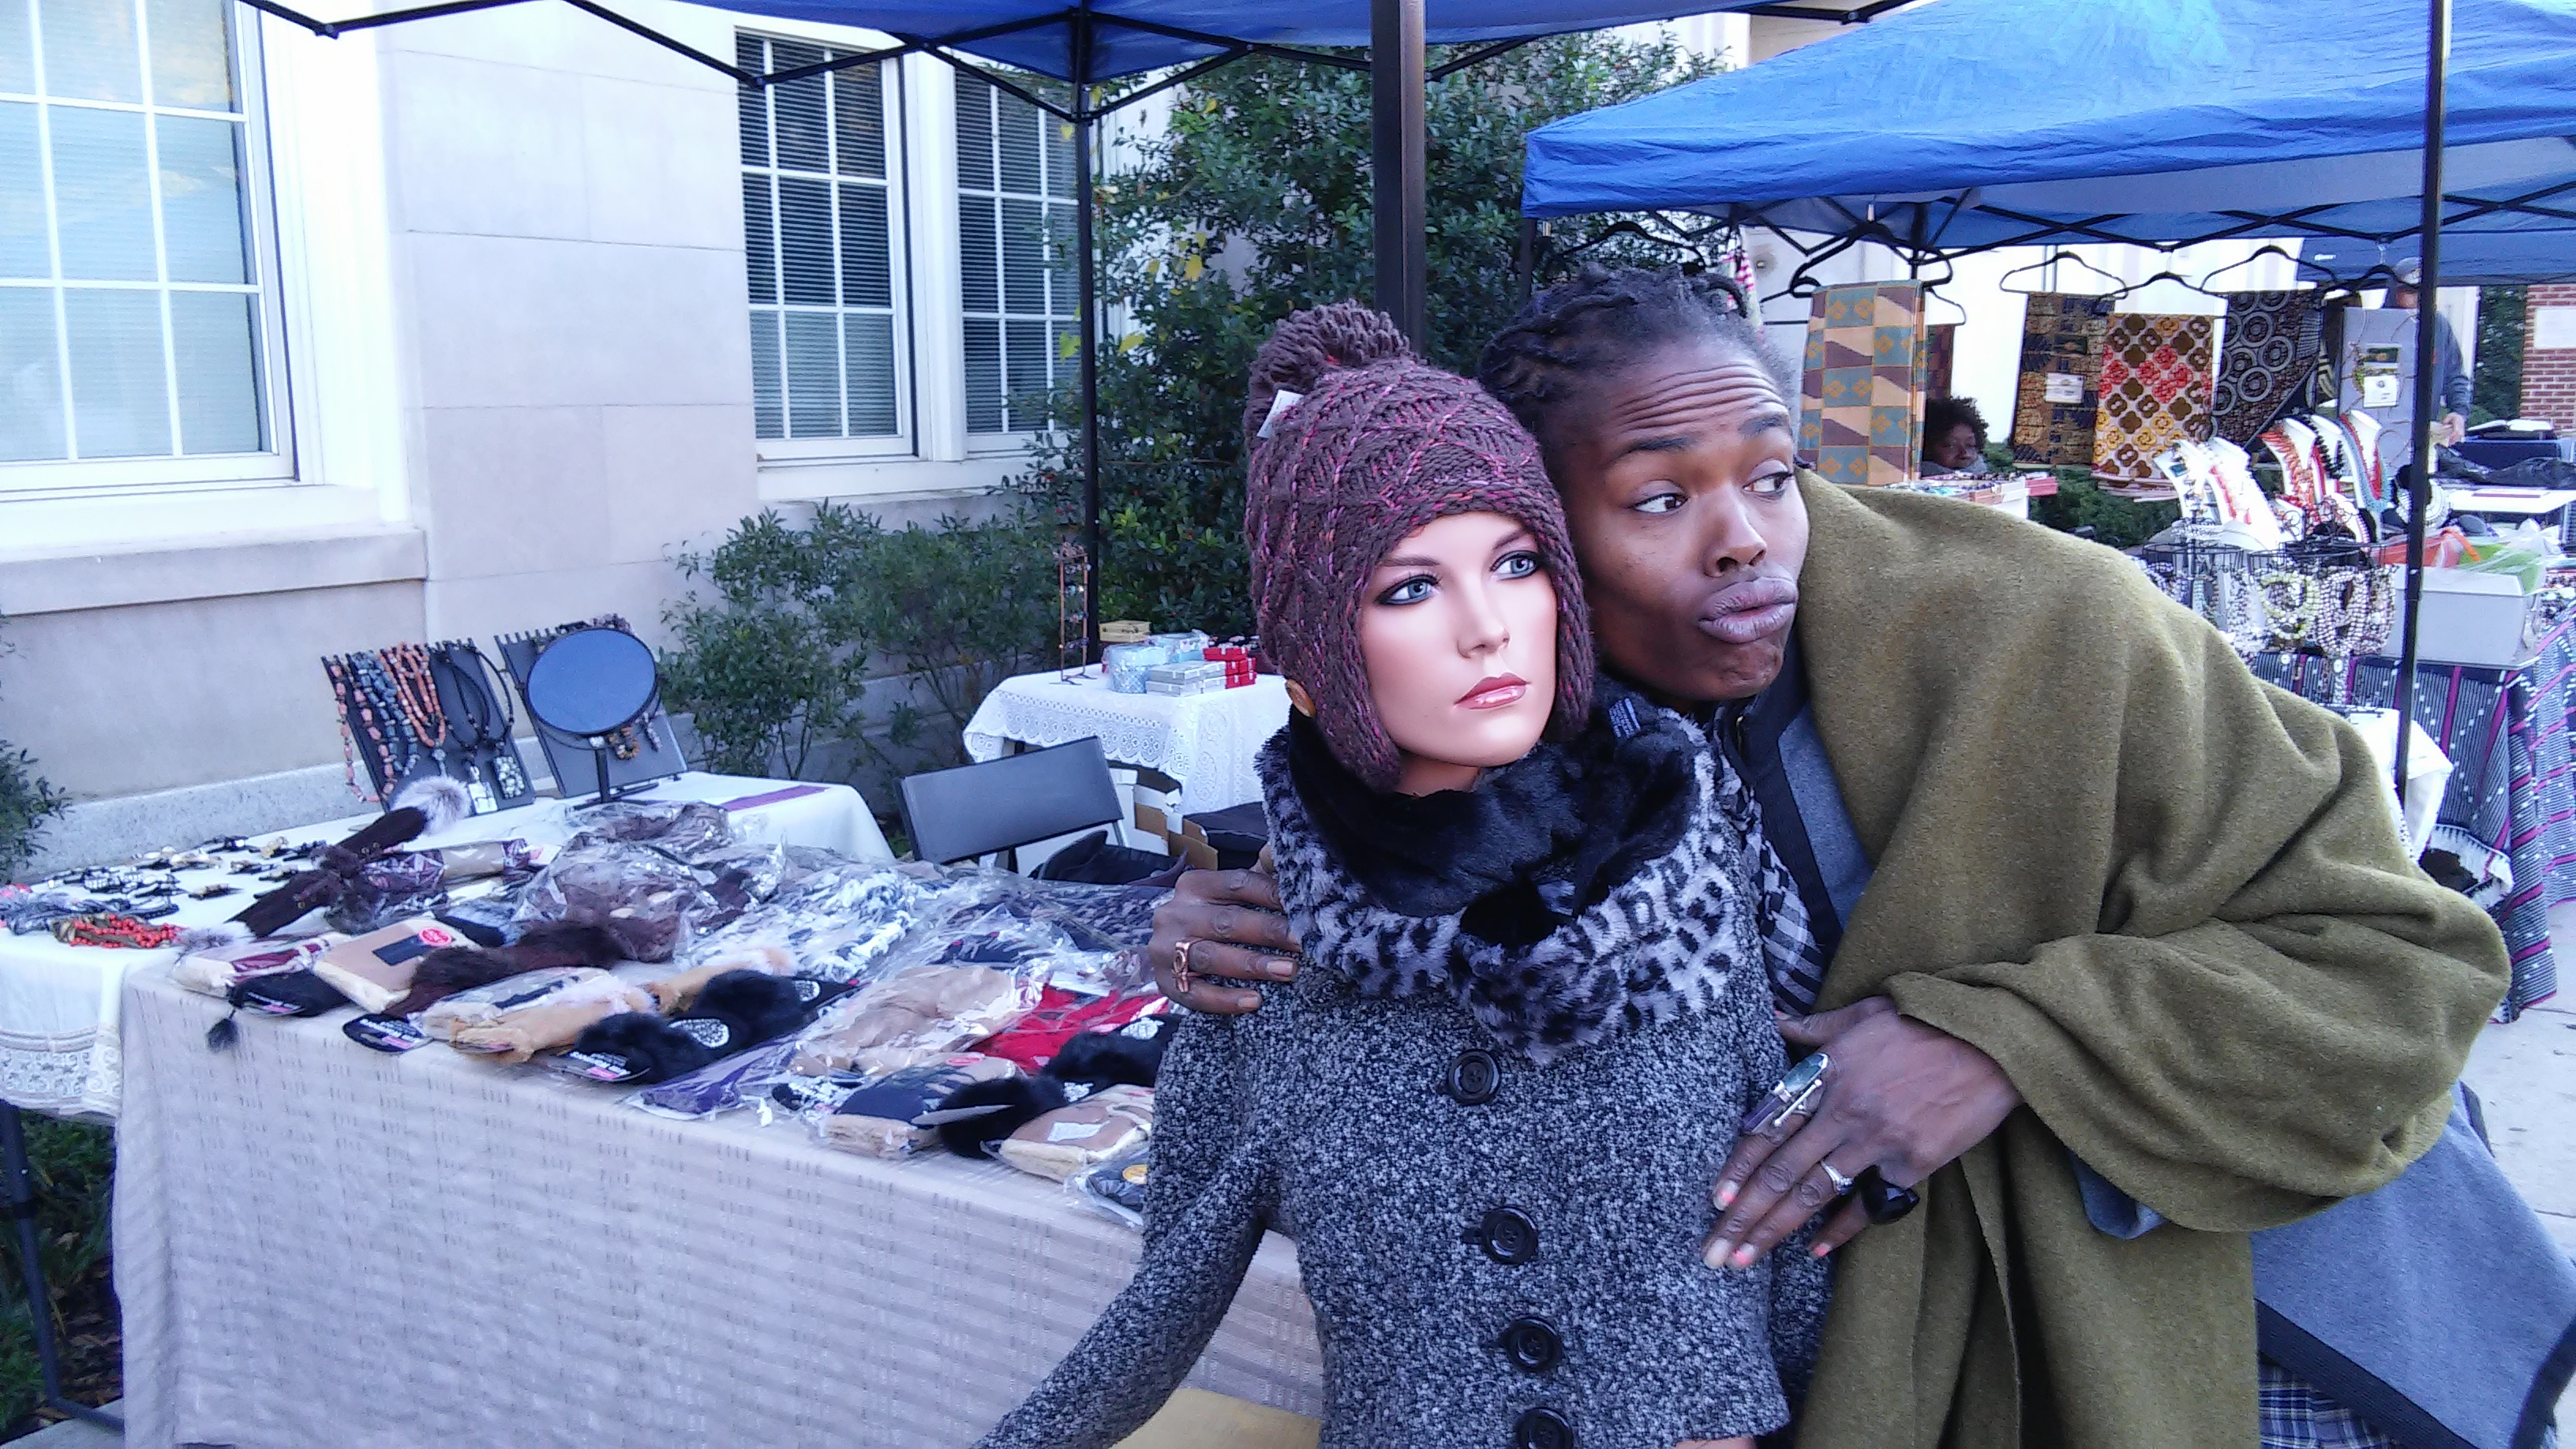 Georgetown Market November 2015 - Customer Poses with Mannequin Victoria